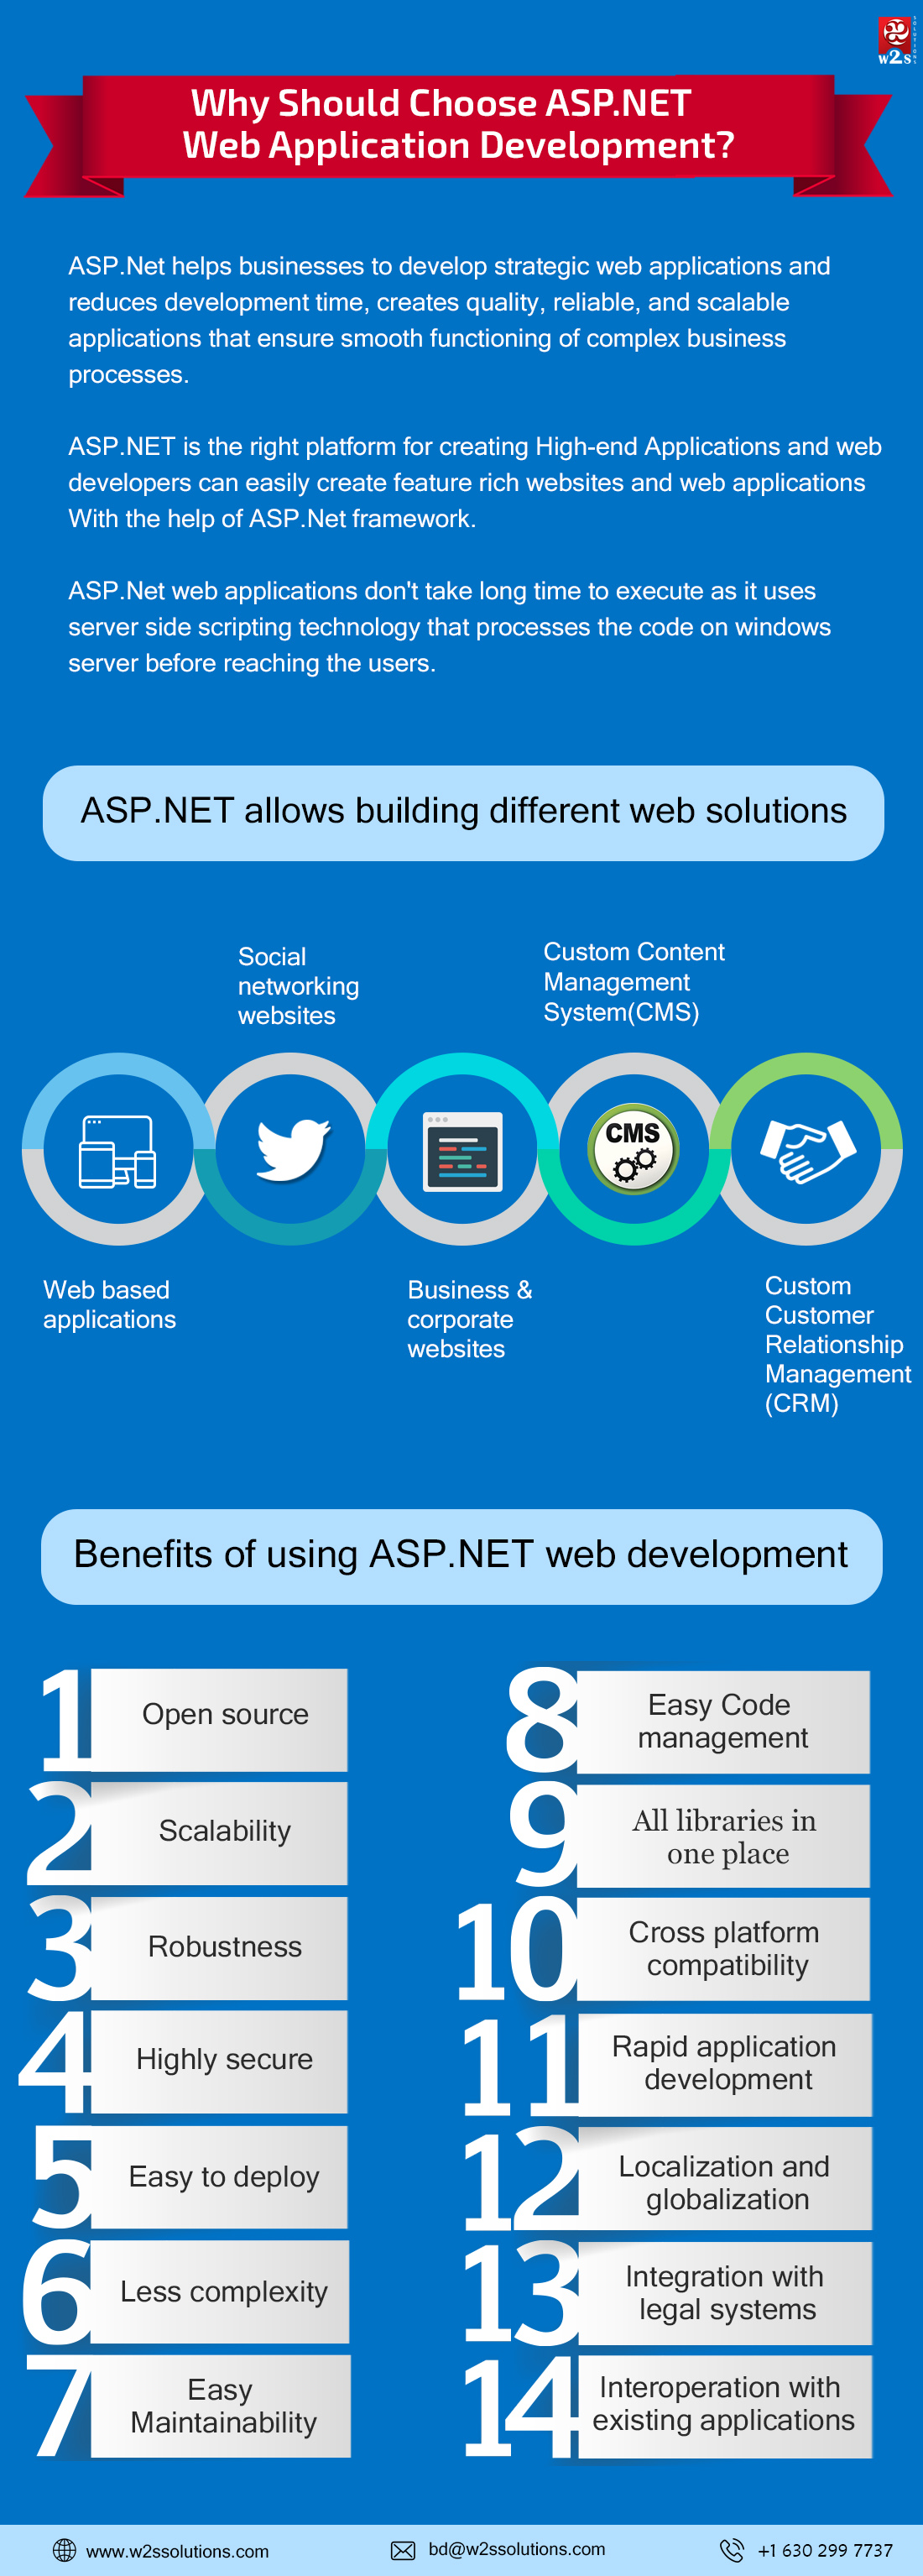 Why Should Choose ASP.NET Web Application Development